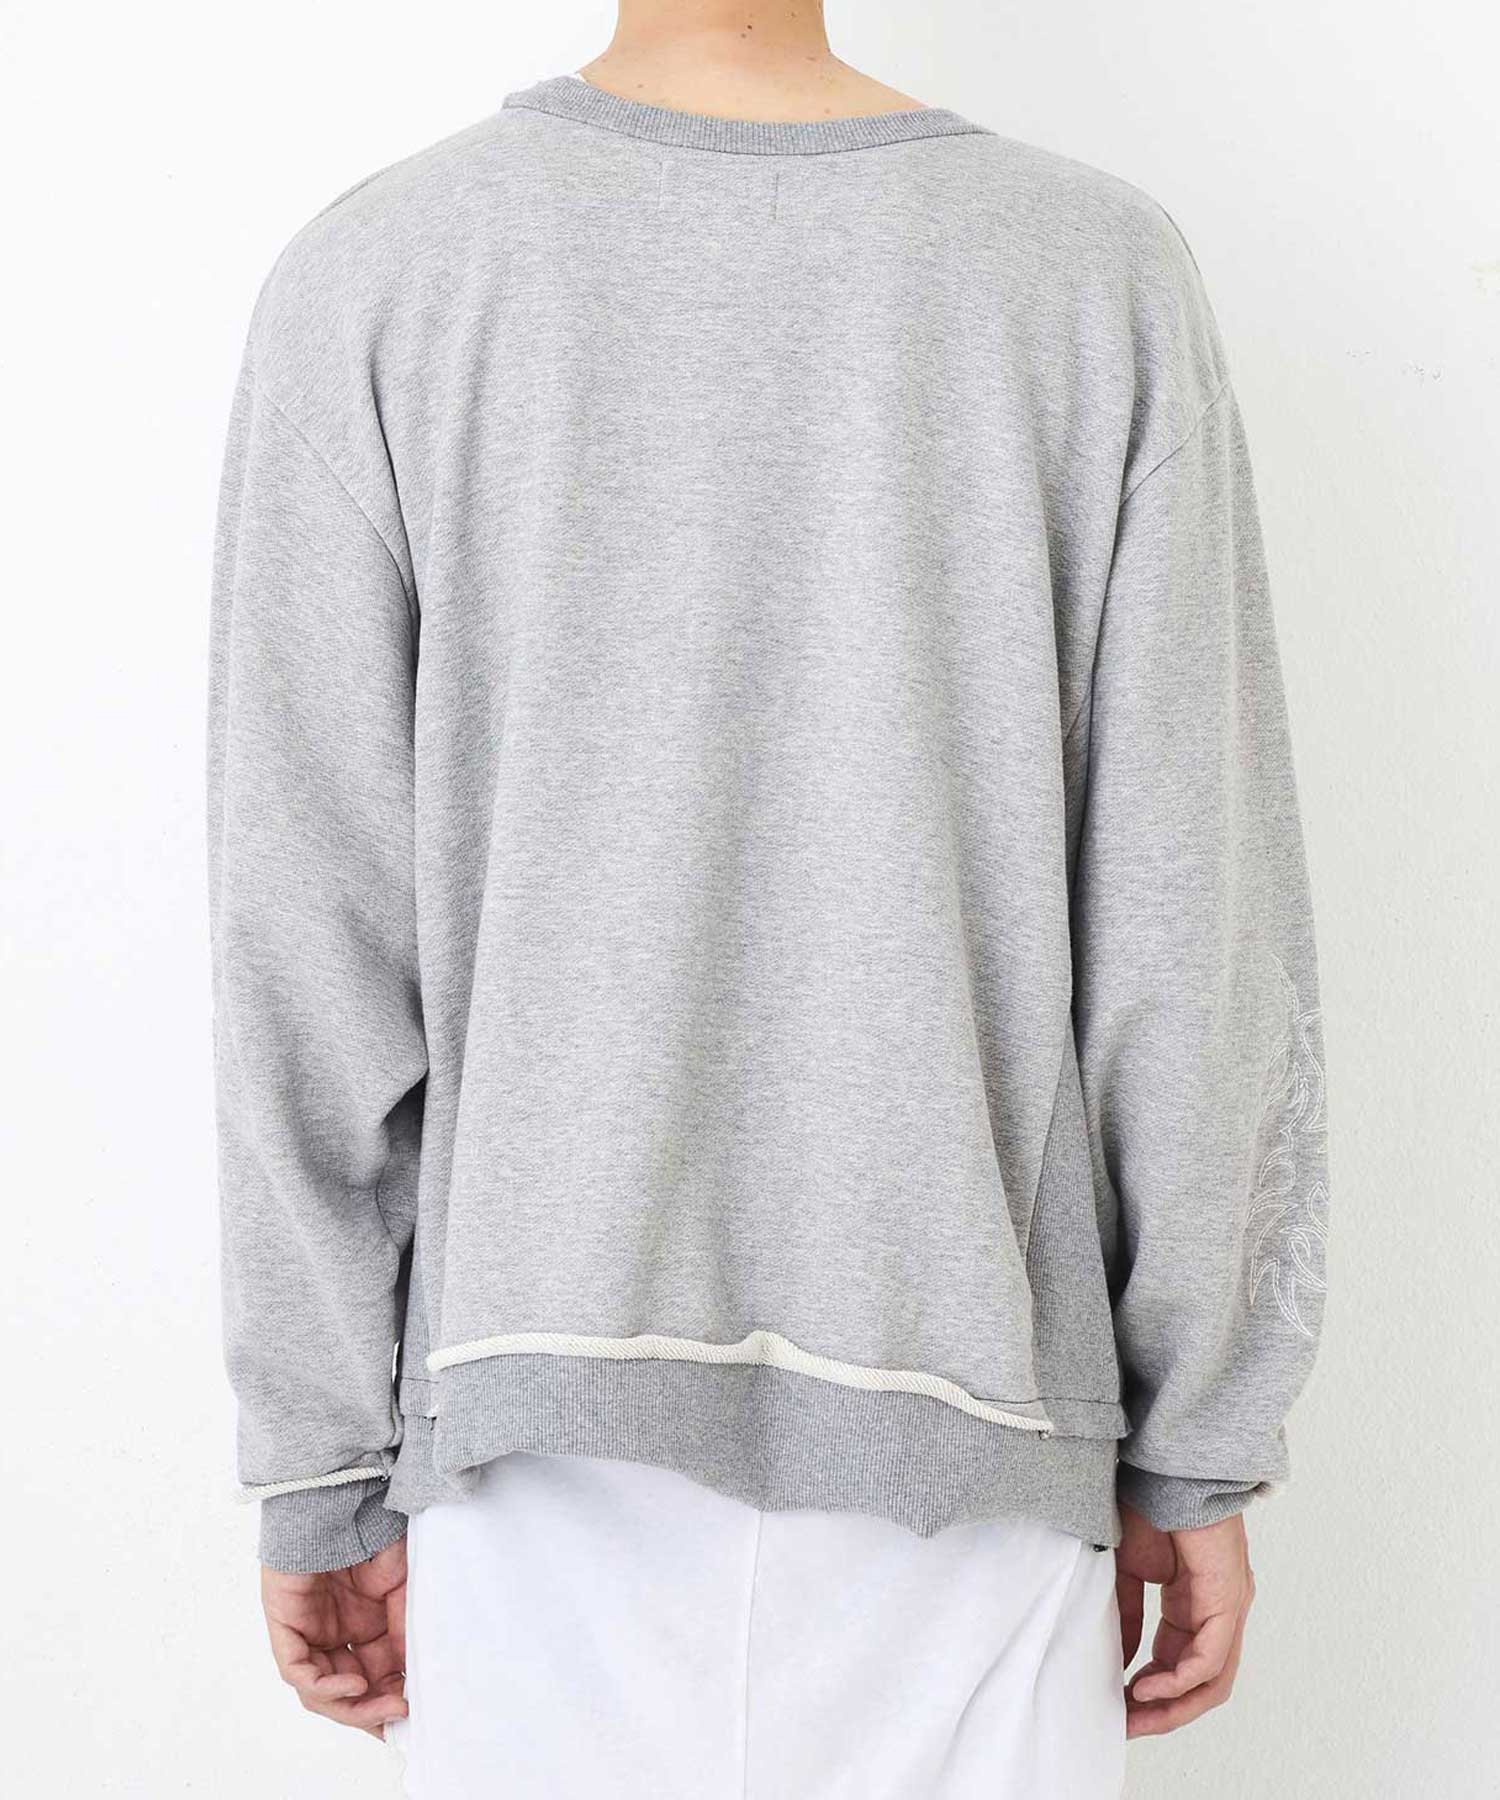 "WIDE C.NECK ""EMBROIDERY""【Gray】"